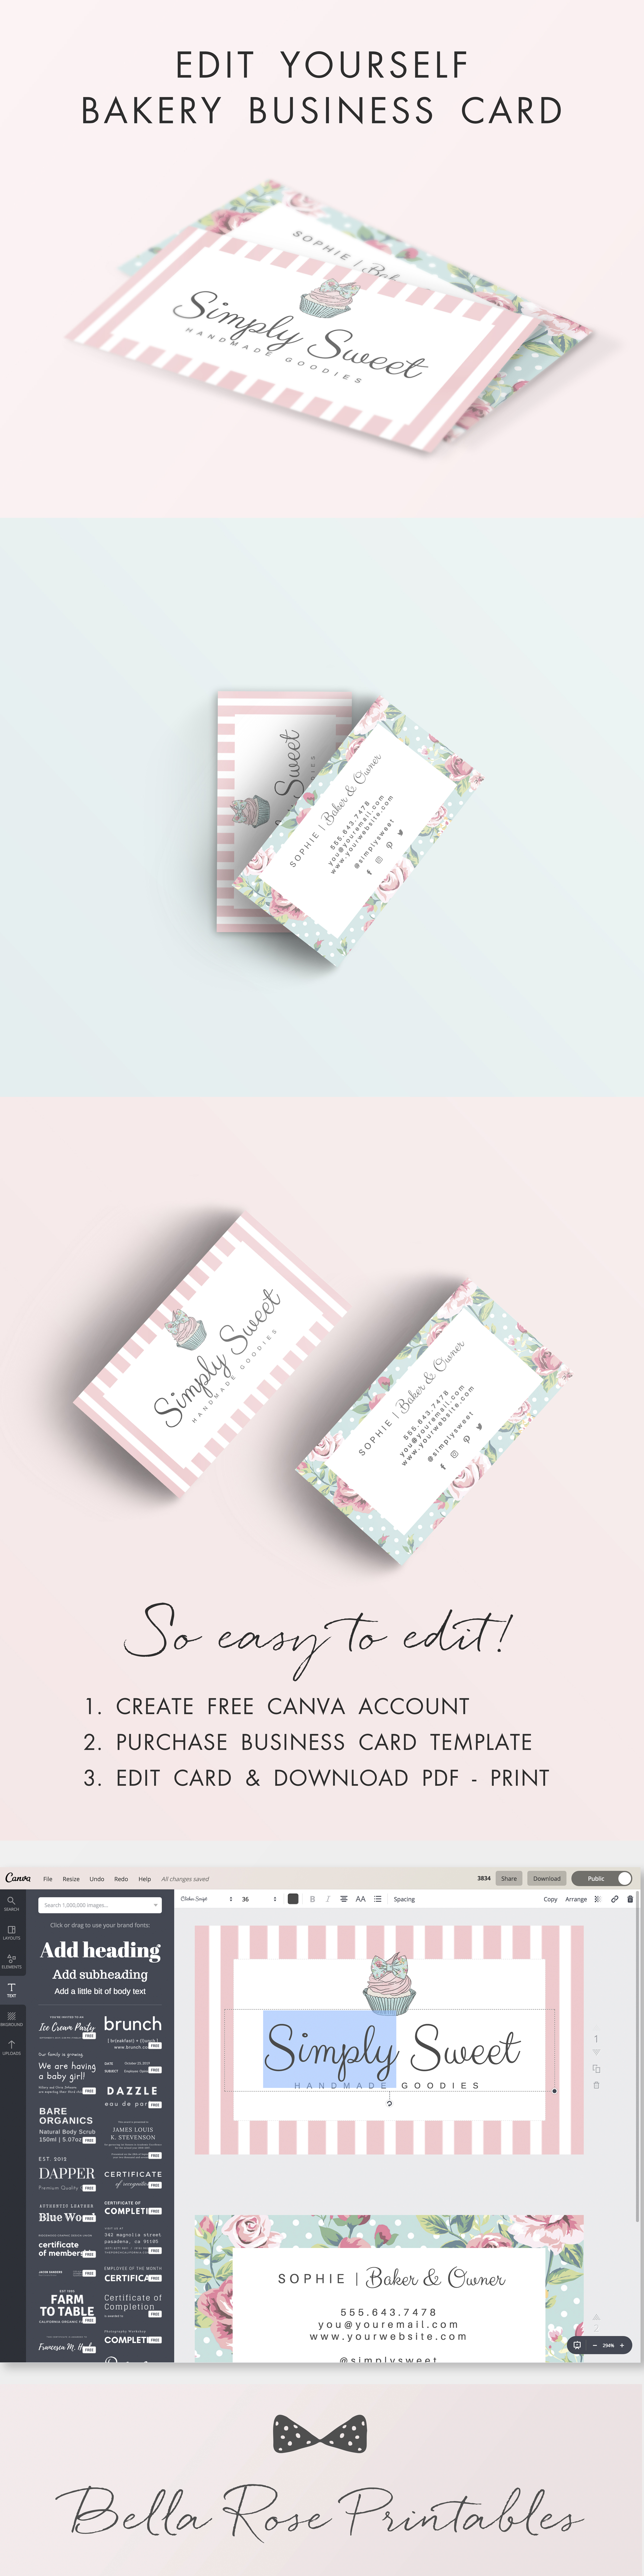 Bakery business card edit yourself business card design cupcake